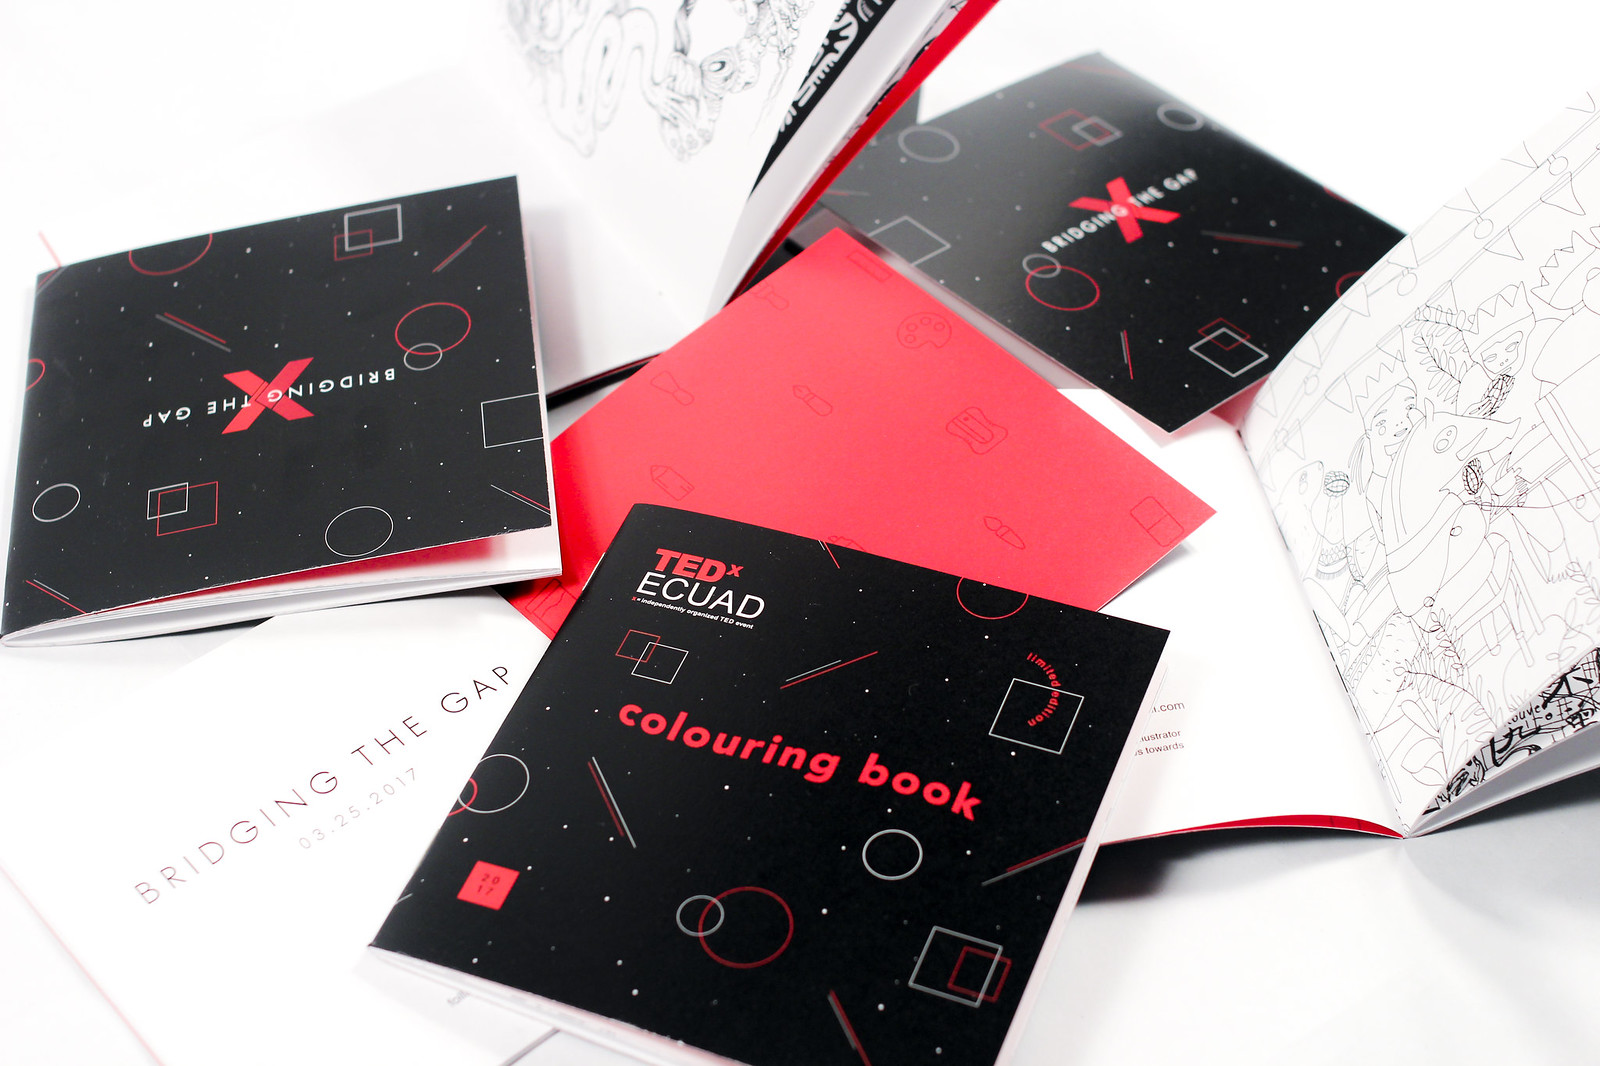 TEDxECUAD 2017 Communication, Design, Swag Material